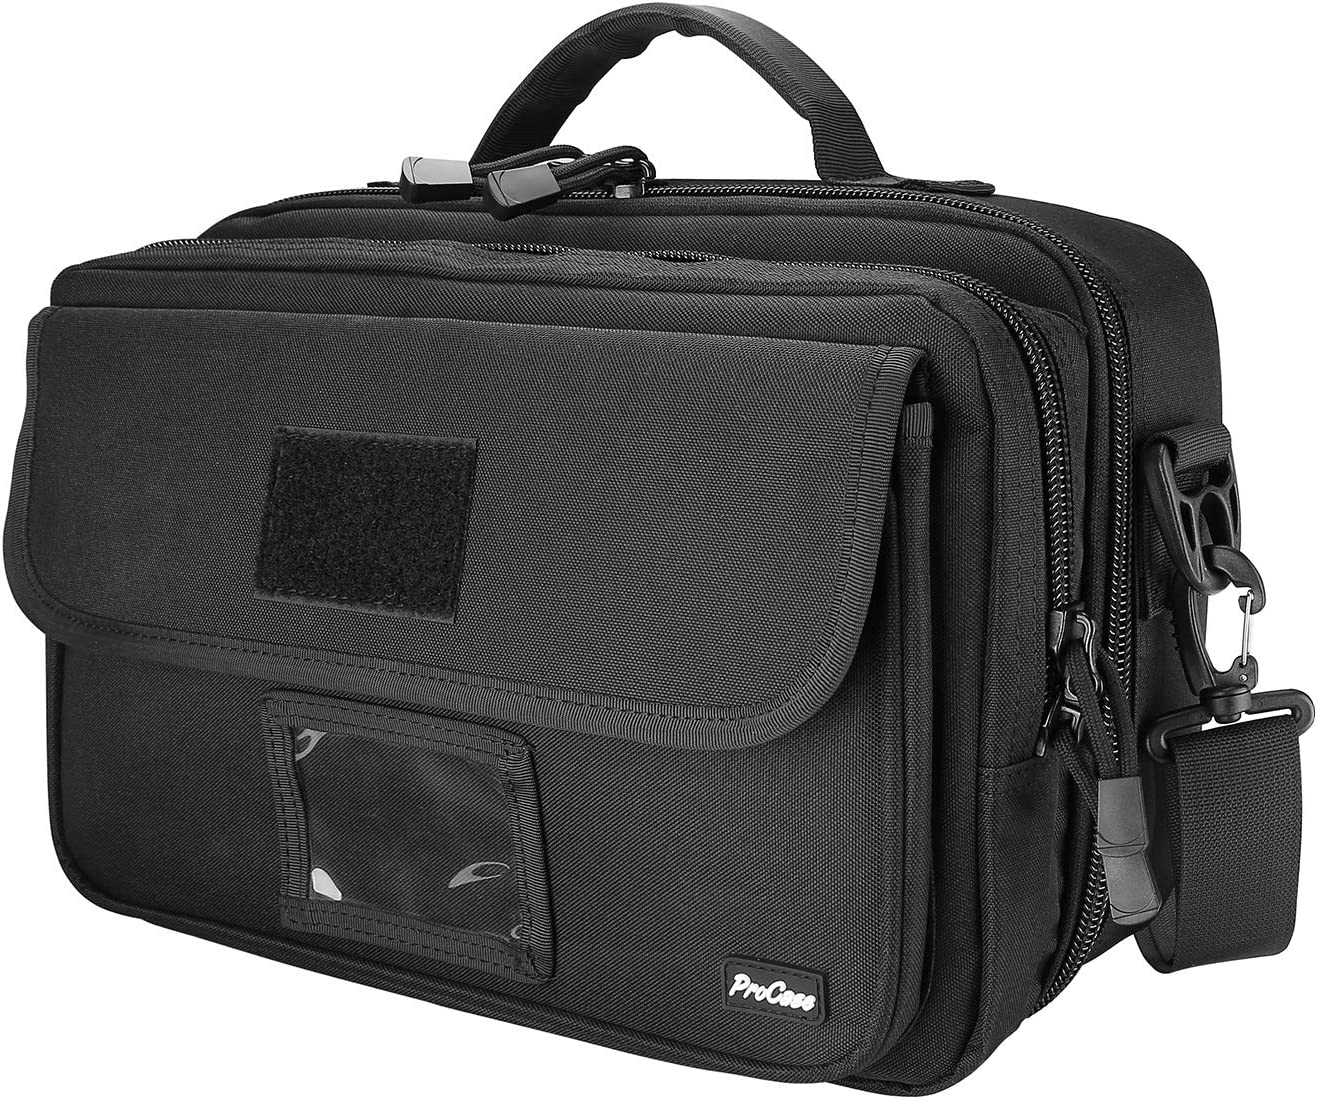 ProCase Tactical Gun Range Bag, Deluxe Padded Pistol Case Shooting Range Duffle Bag for Up to 4 Handguns, 8 Magazine Cartridge, Eye Glasses, Ear Muffs and Other Shooting Accessories -Black